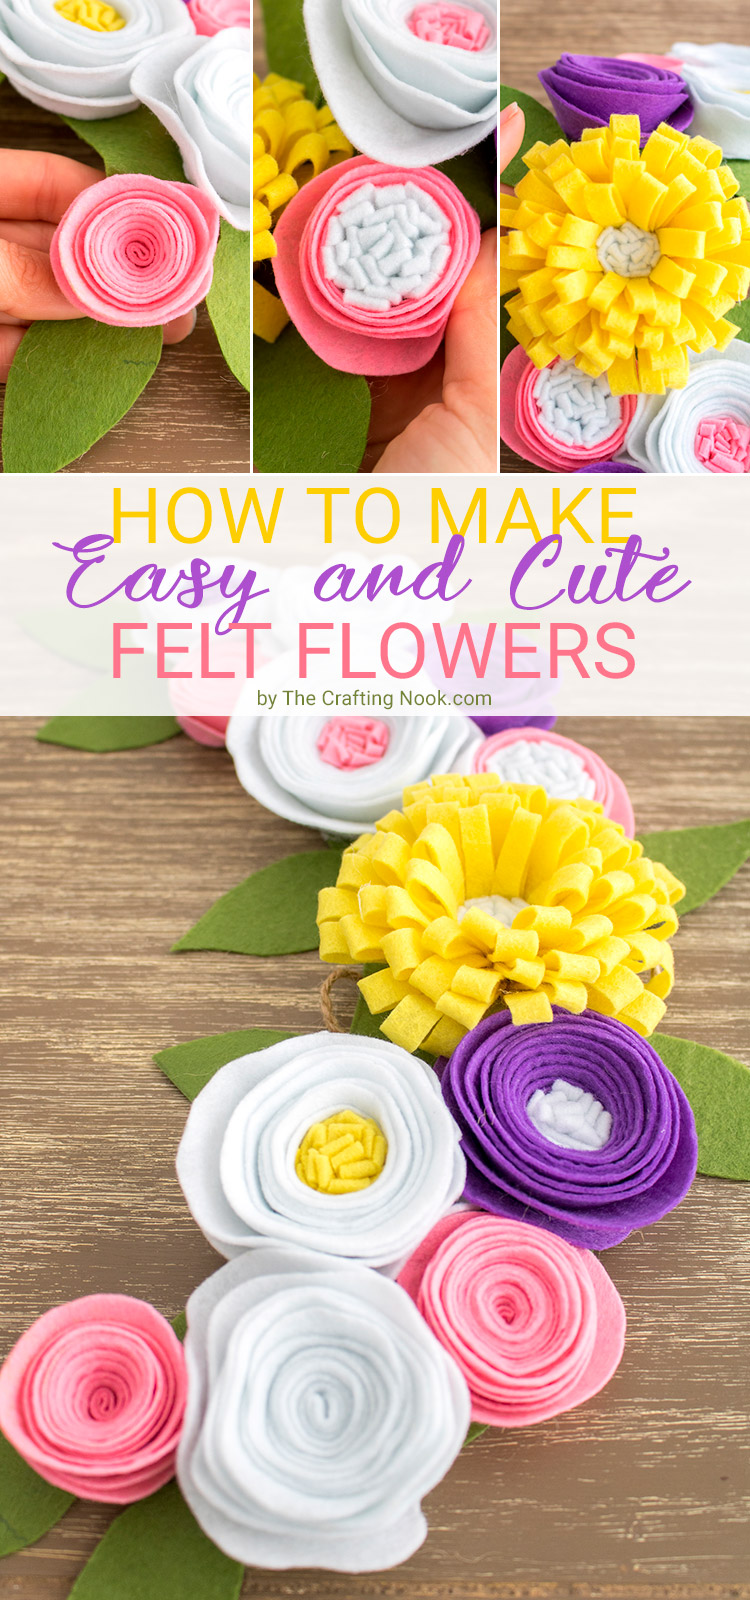 How to make Felt Flowers Easy and Cute